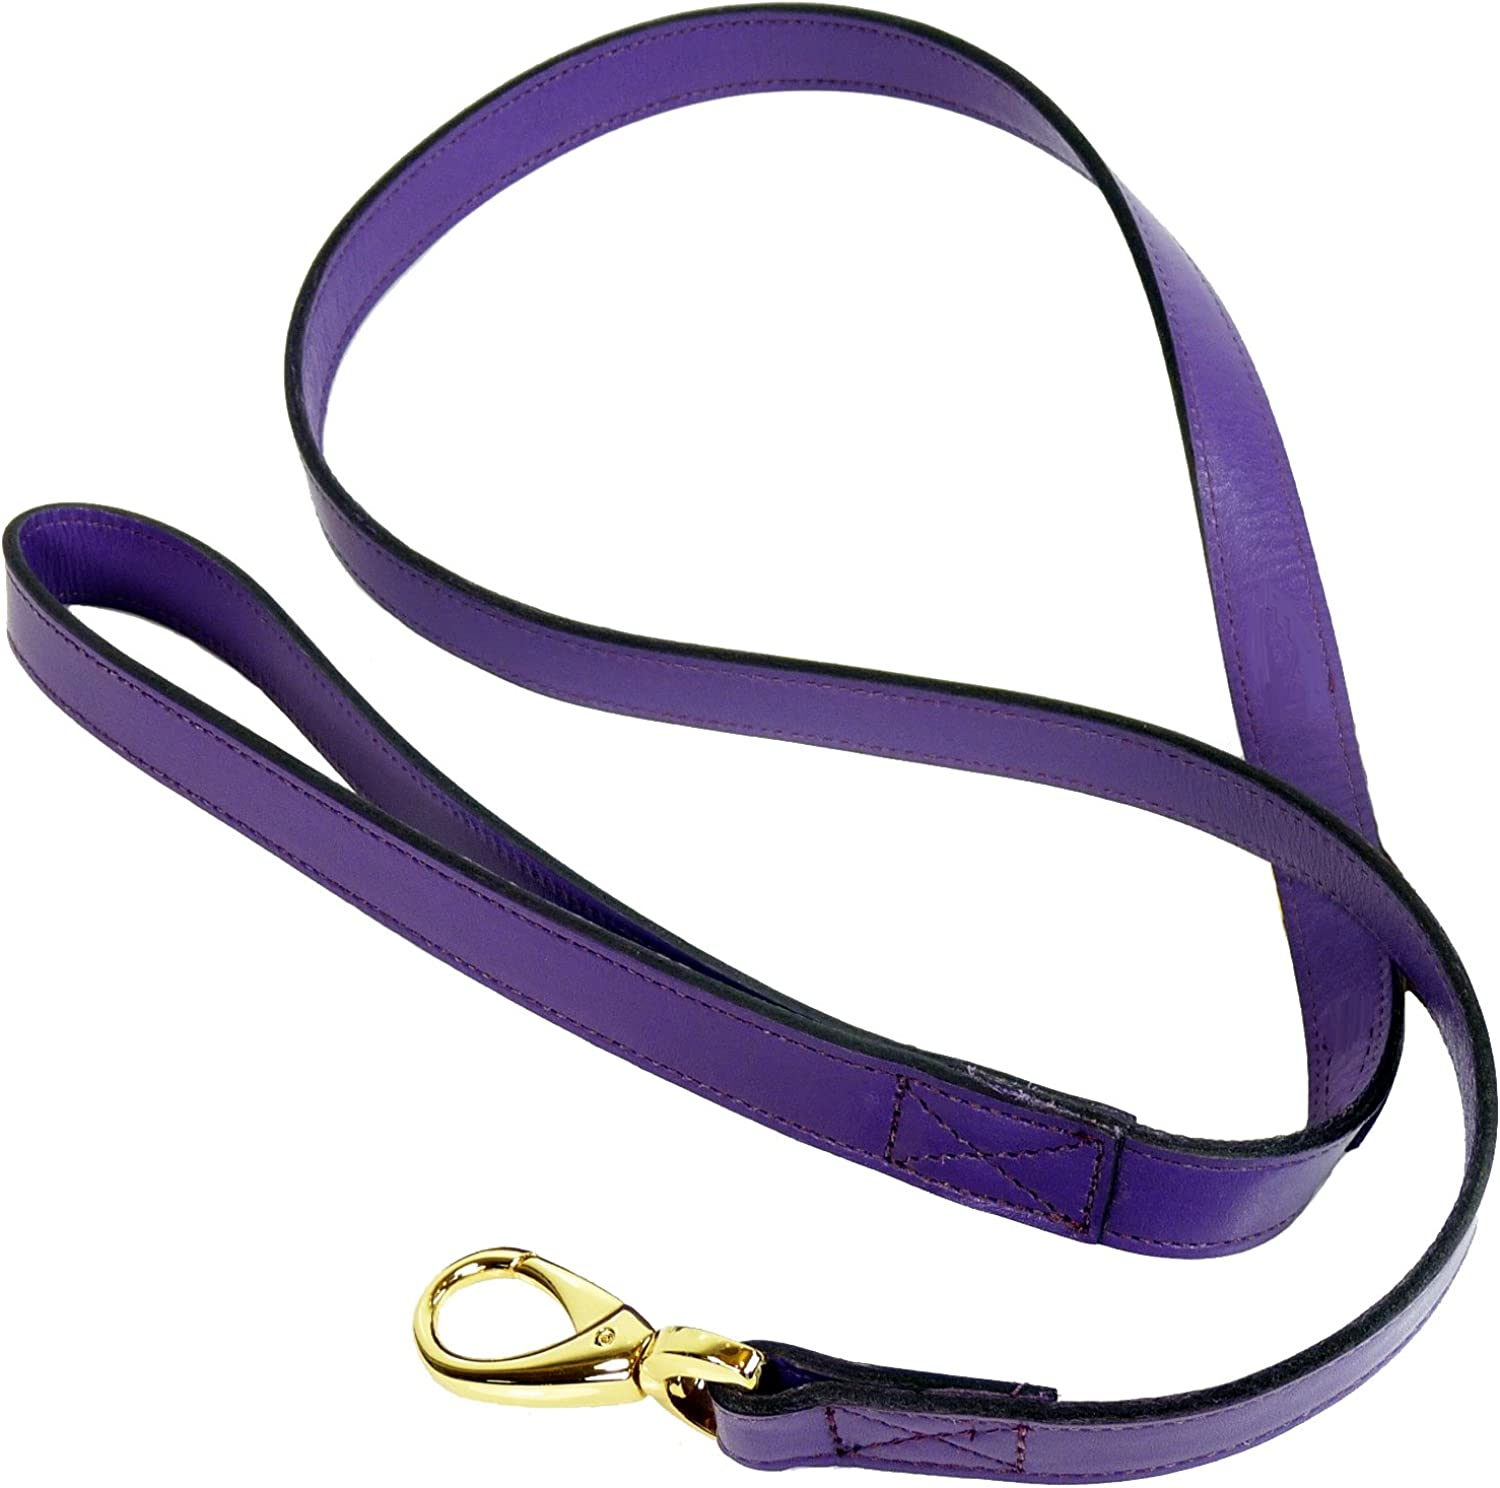 Hartman & pink Haute Couture Octagon Dog Lead, 3 4Inch, Grape